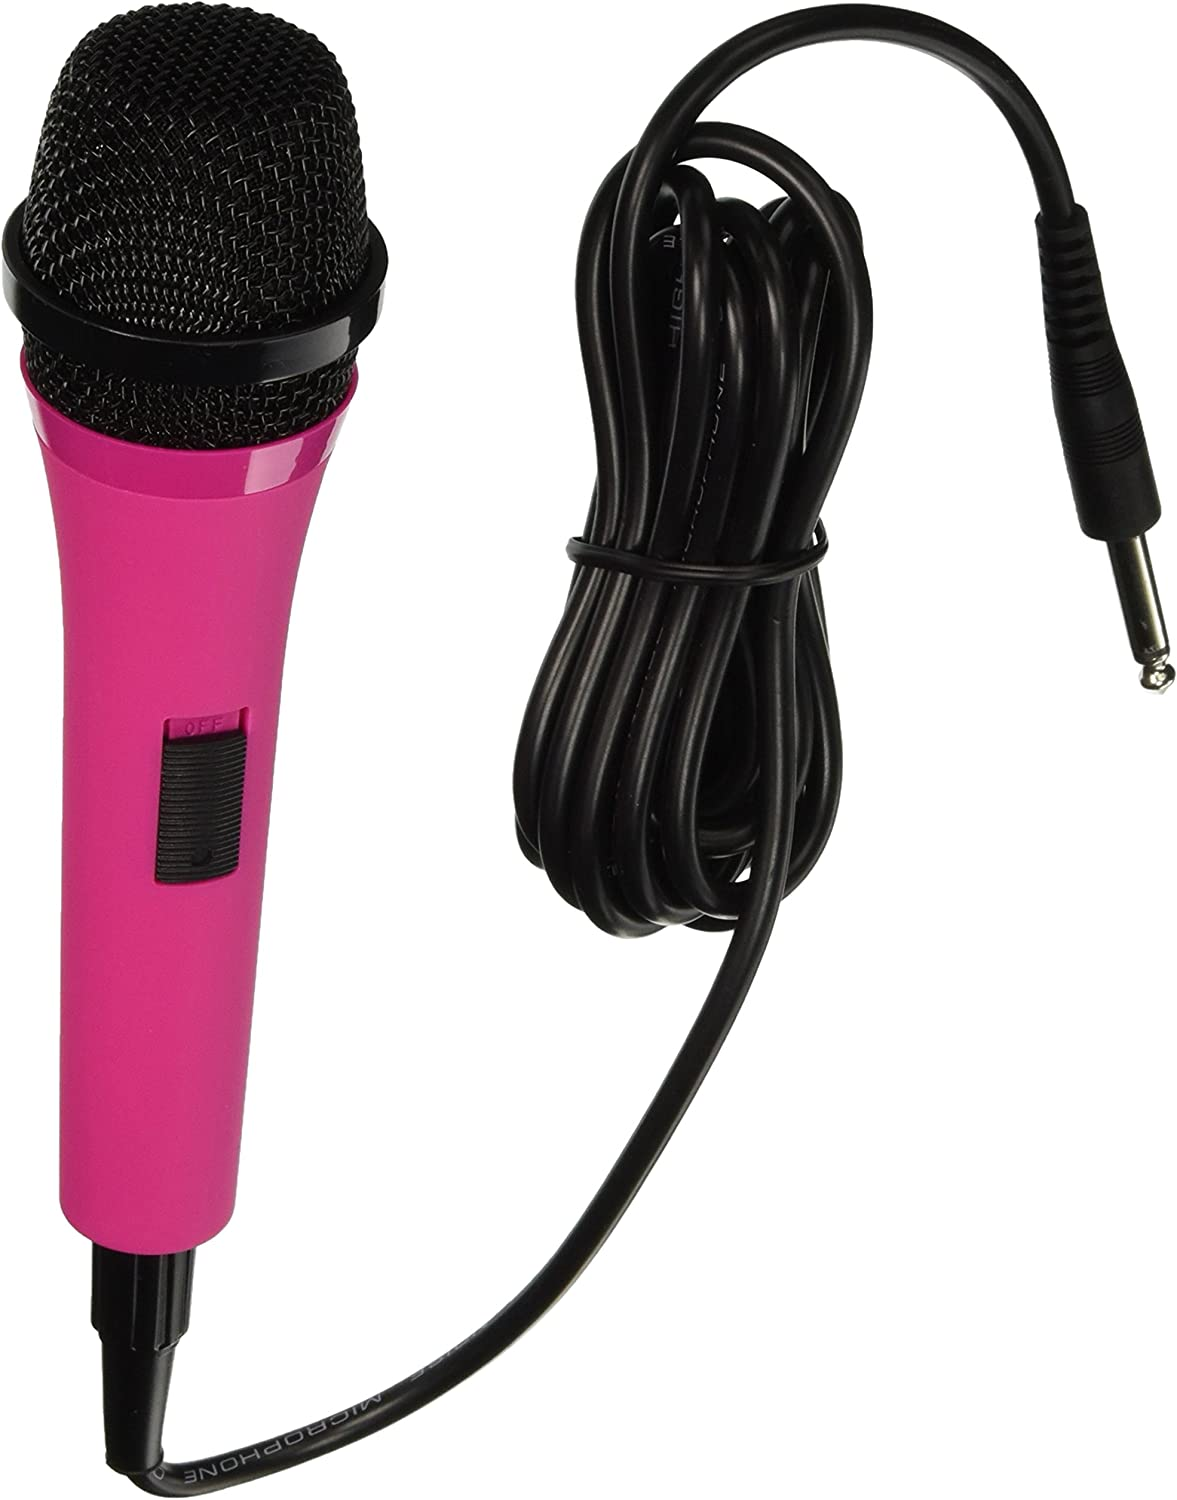 Singing Machine SMM205P Uni-Directional Dynamic Microphone with 10-Foot Cord - Pink